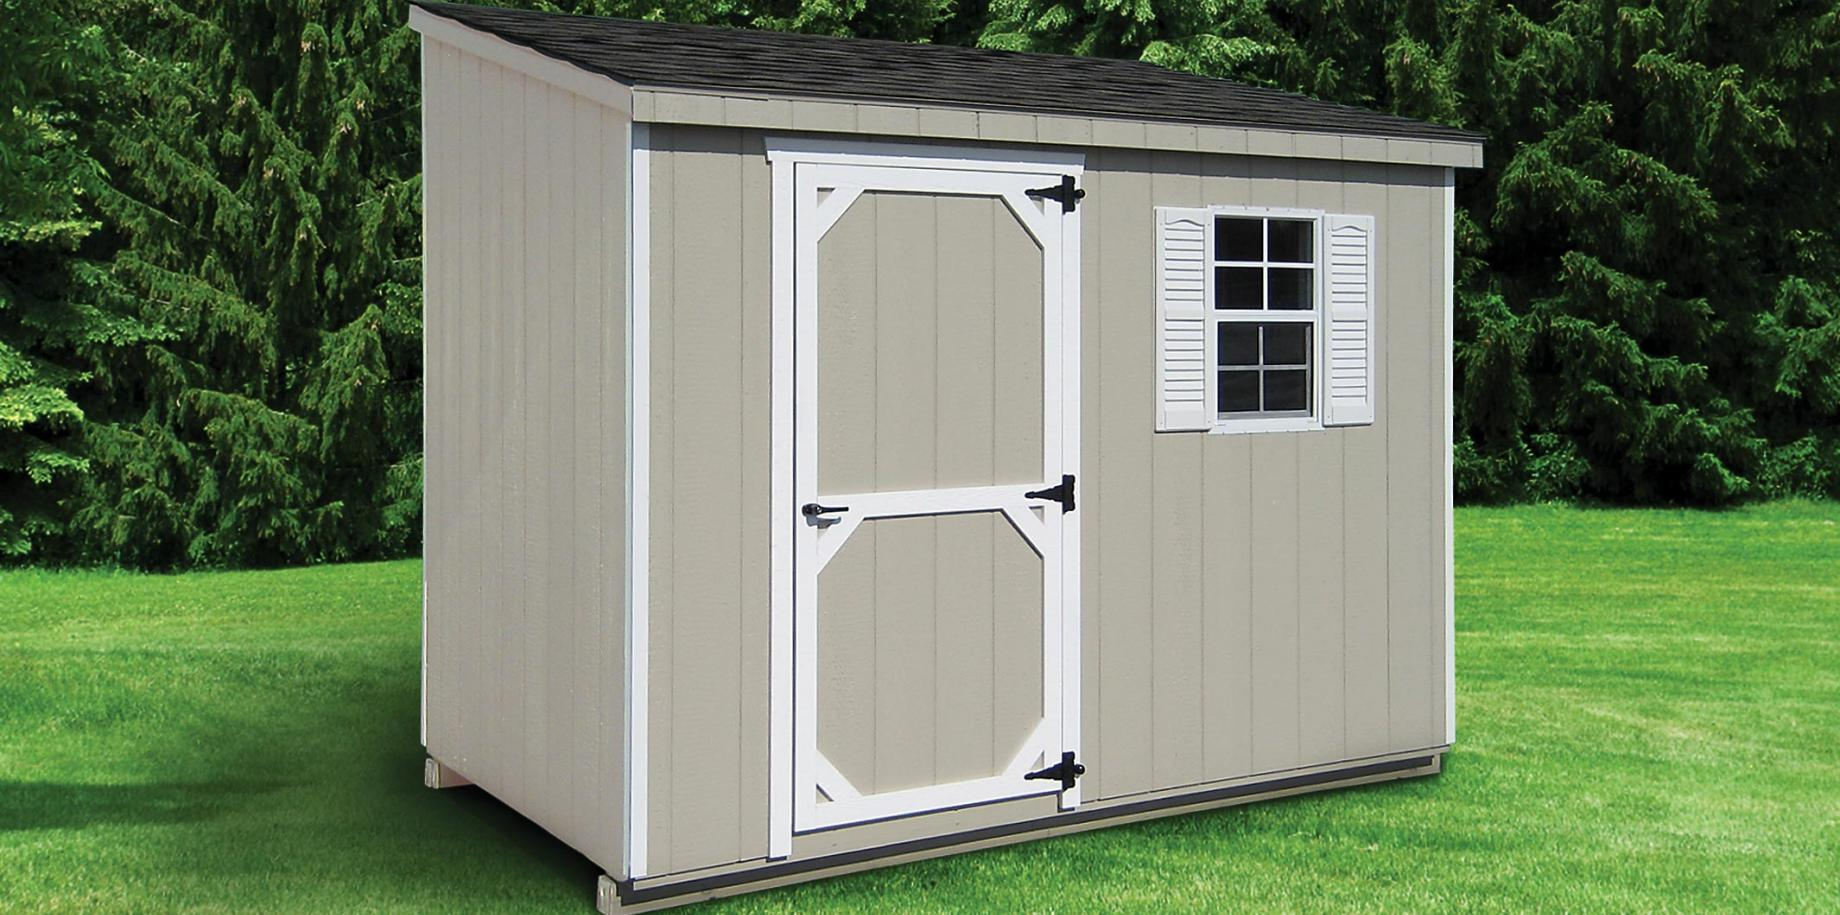 A Lean-To shed with wood siding painted gray